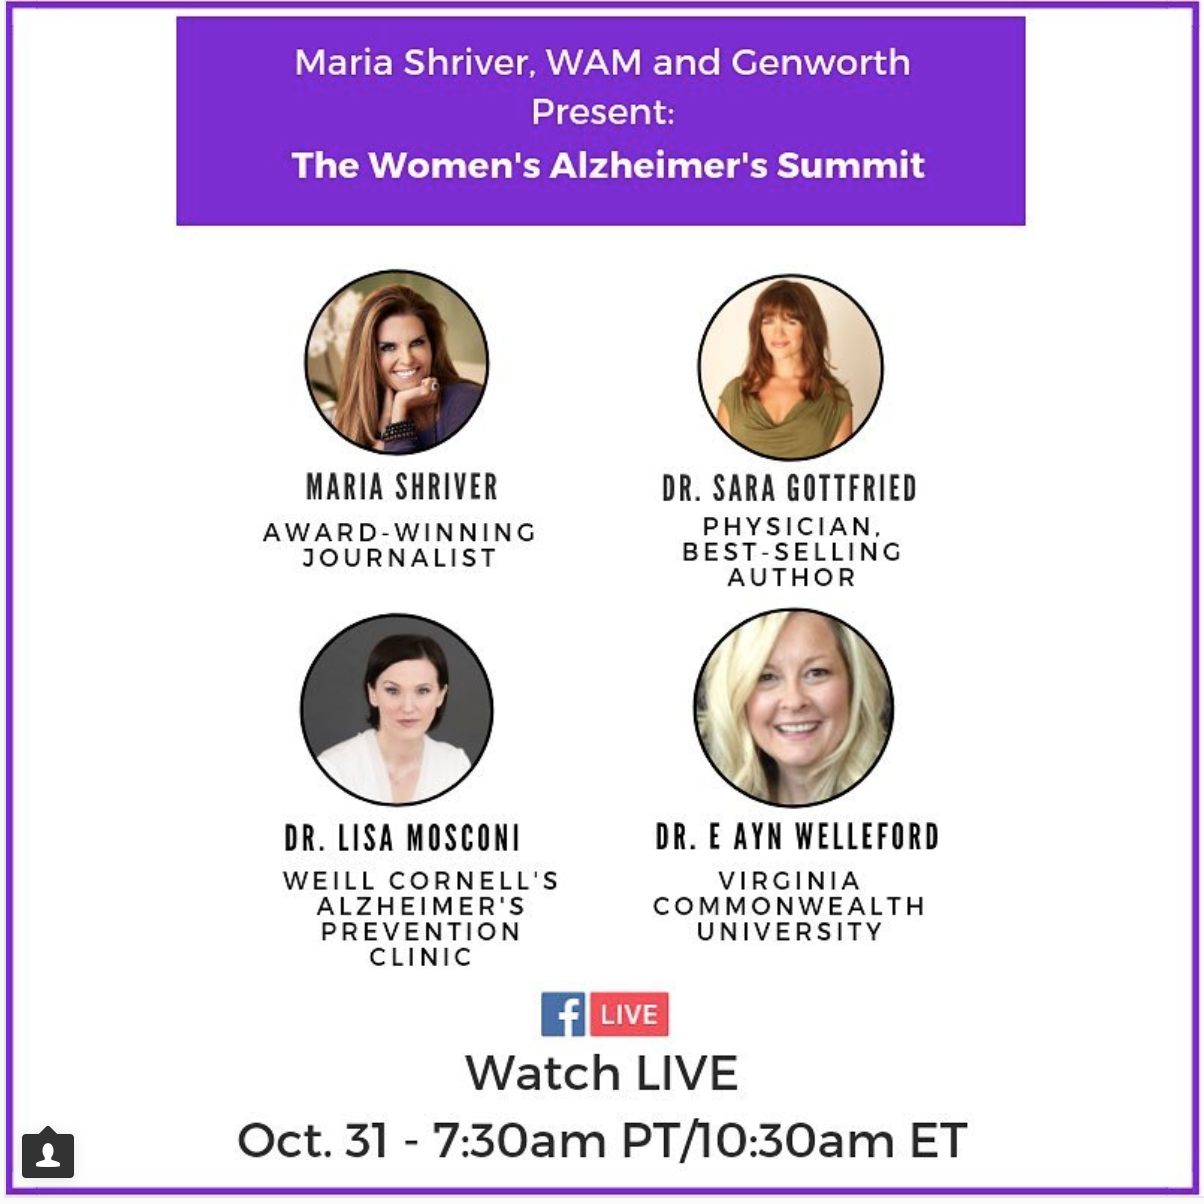 Women's Alzheimer's Movement Summit 2018 - Genworth Hosts Alzheimer's Advocate Maria Shriver at Women's Alzheimer's Summit in Richmond, VA, on Oct. 31. Speakers and panelists will include: Barb Cole, Alzheimer's Advocate; Dr. Lisa Mosconi, PhD, Associate Director Alzheimer's Prevention Clinic at Weill Cornell Medical College/NewYork-Presbyterian Hospital, Director Women's Brain Initiative at Weill Cornell; Dr. Sara Gottfried, MD, Harvard-educated physician, keynote speaker and author of three New York Times bestselling books; Dr. Ayn Welleford, MS, PhD, Associate Professor Virginia Commonwealth University, Gerontologist for Community Voice and Co-Lead of Greater-Richmond Age Wave, a University-Community Collective Impact Initiative; Nelson Dellis, 4x USA Memory Champion, memory expert, Founder & CEO Climb for Memory.Watch the livestream here: https://www.facebook.com/thewomensalzheimersmovement/videos/287781742075422/